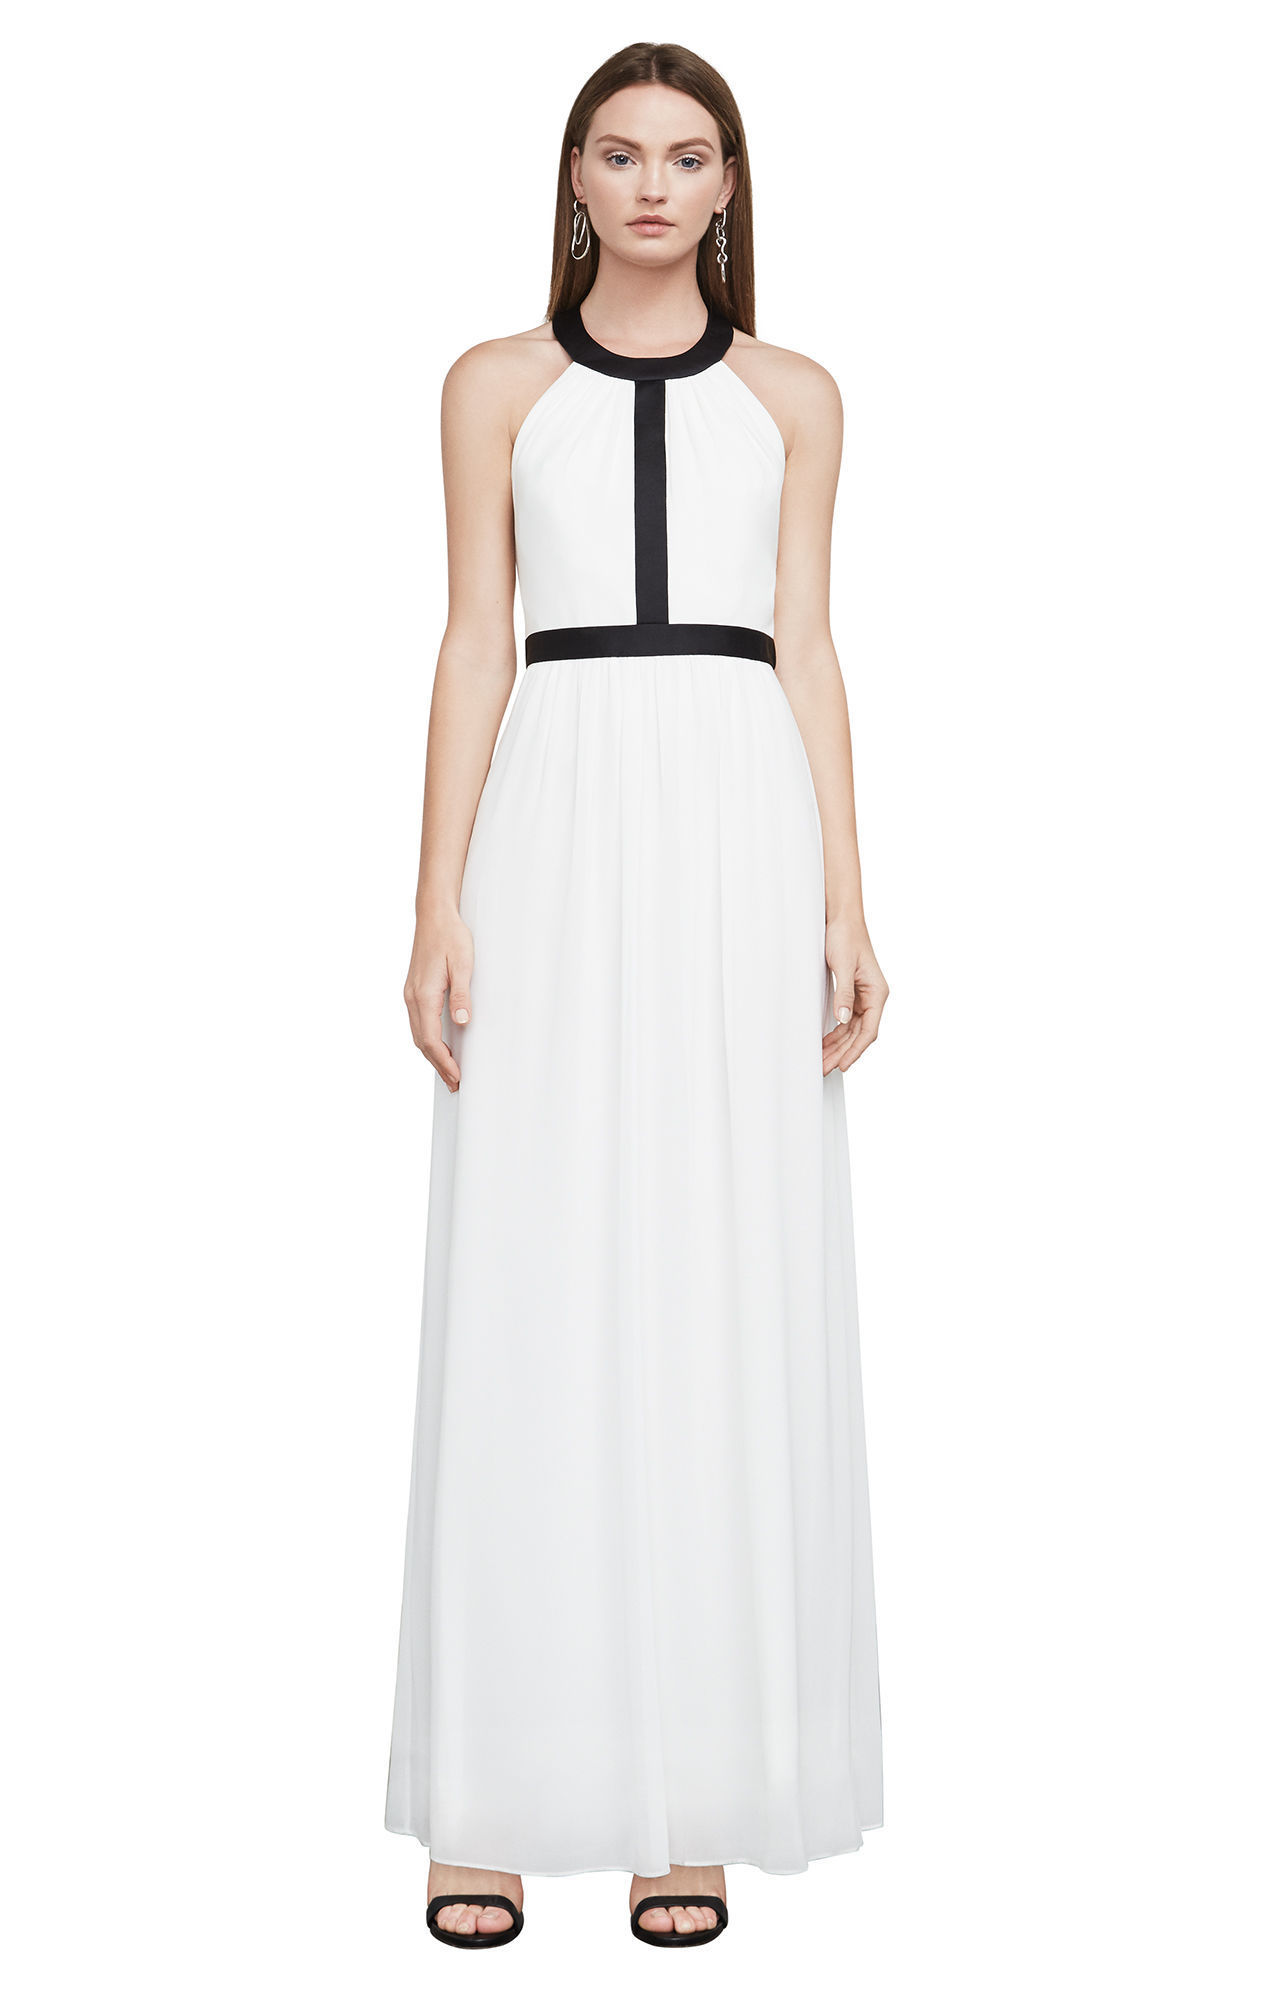 【BCBG MAXAZRIA】ドレス♪ Tacarra Color-Blocked Gown